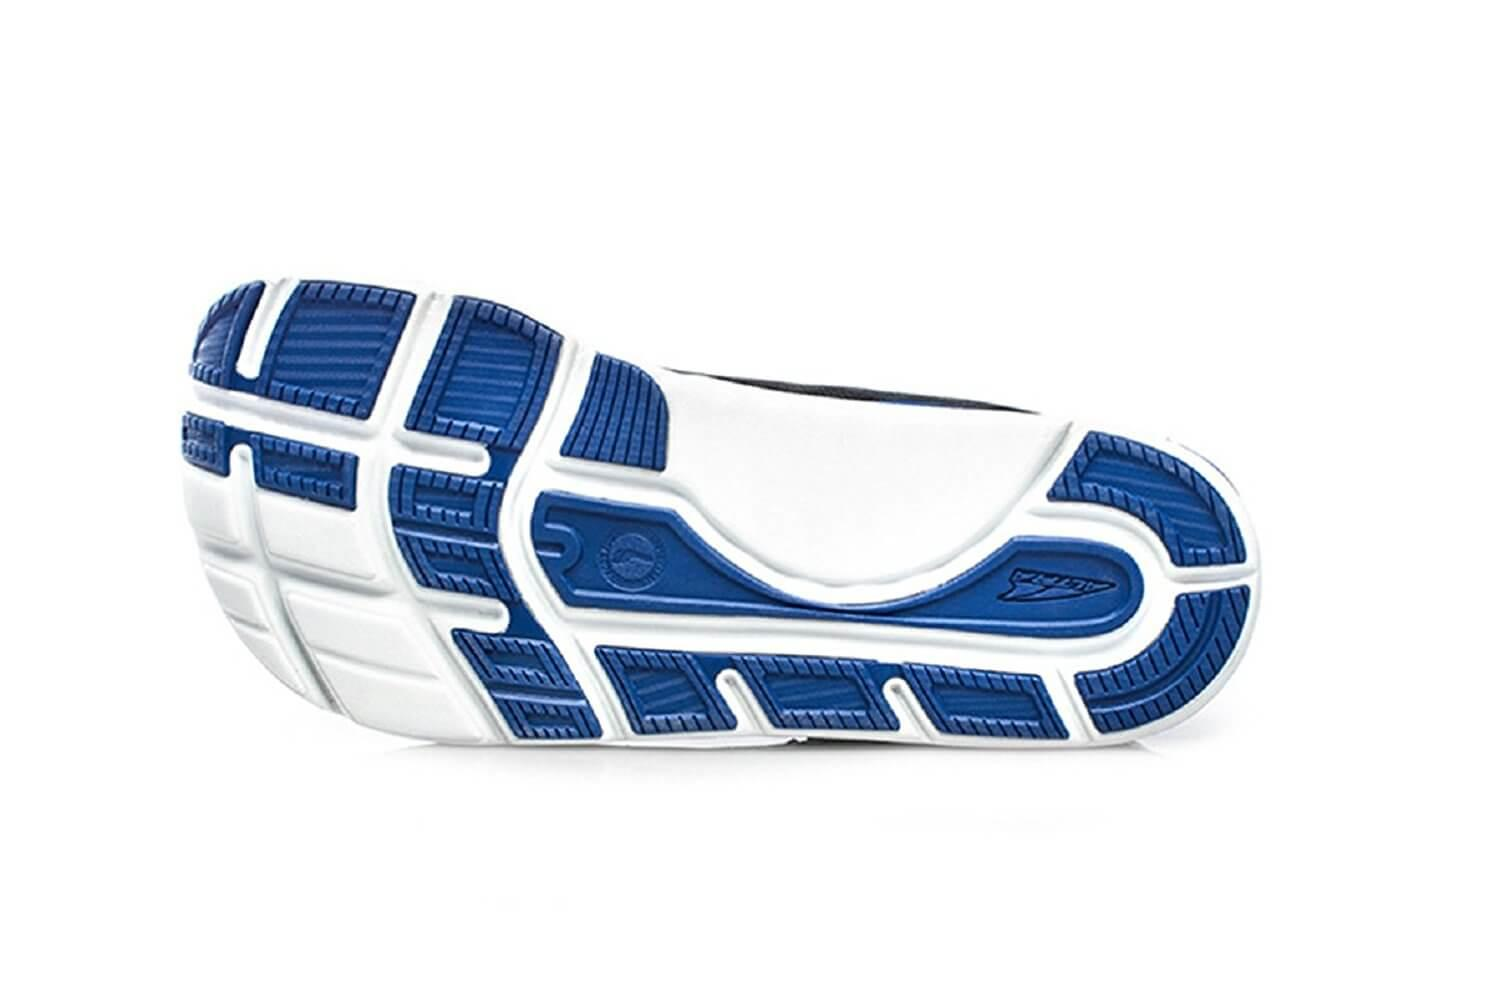 A look at the Altra Torin IQ's outsole.